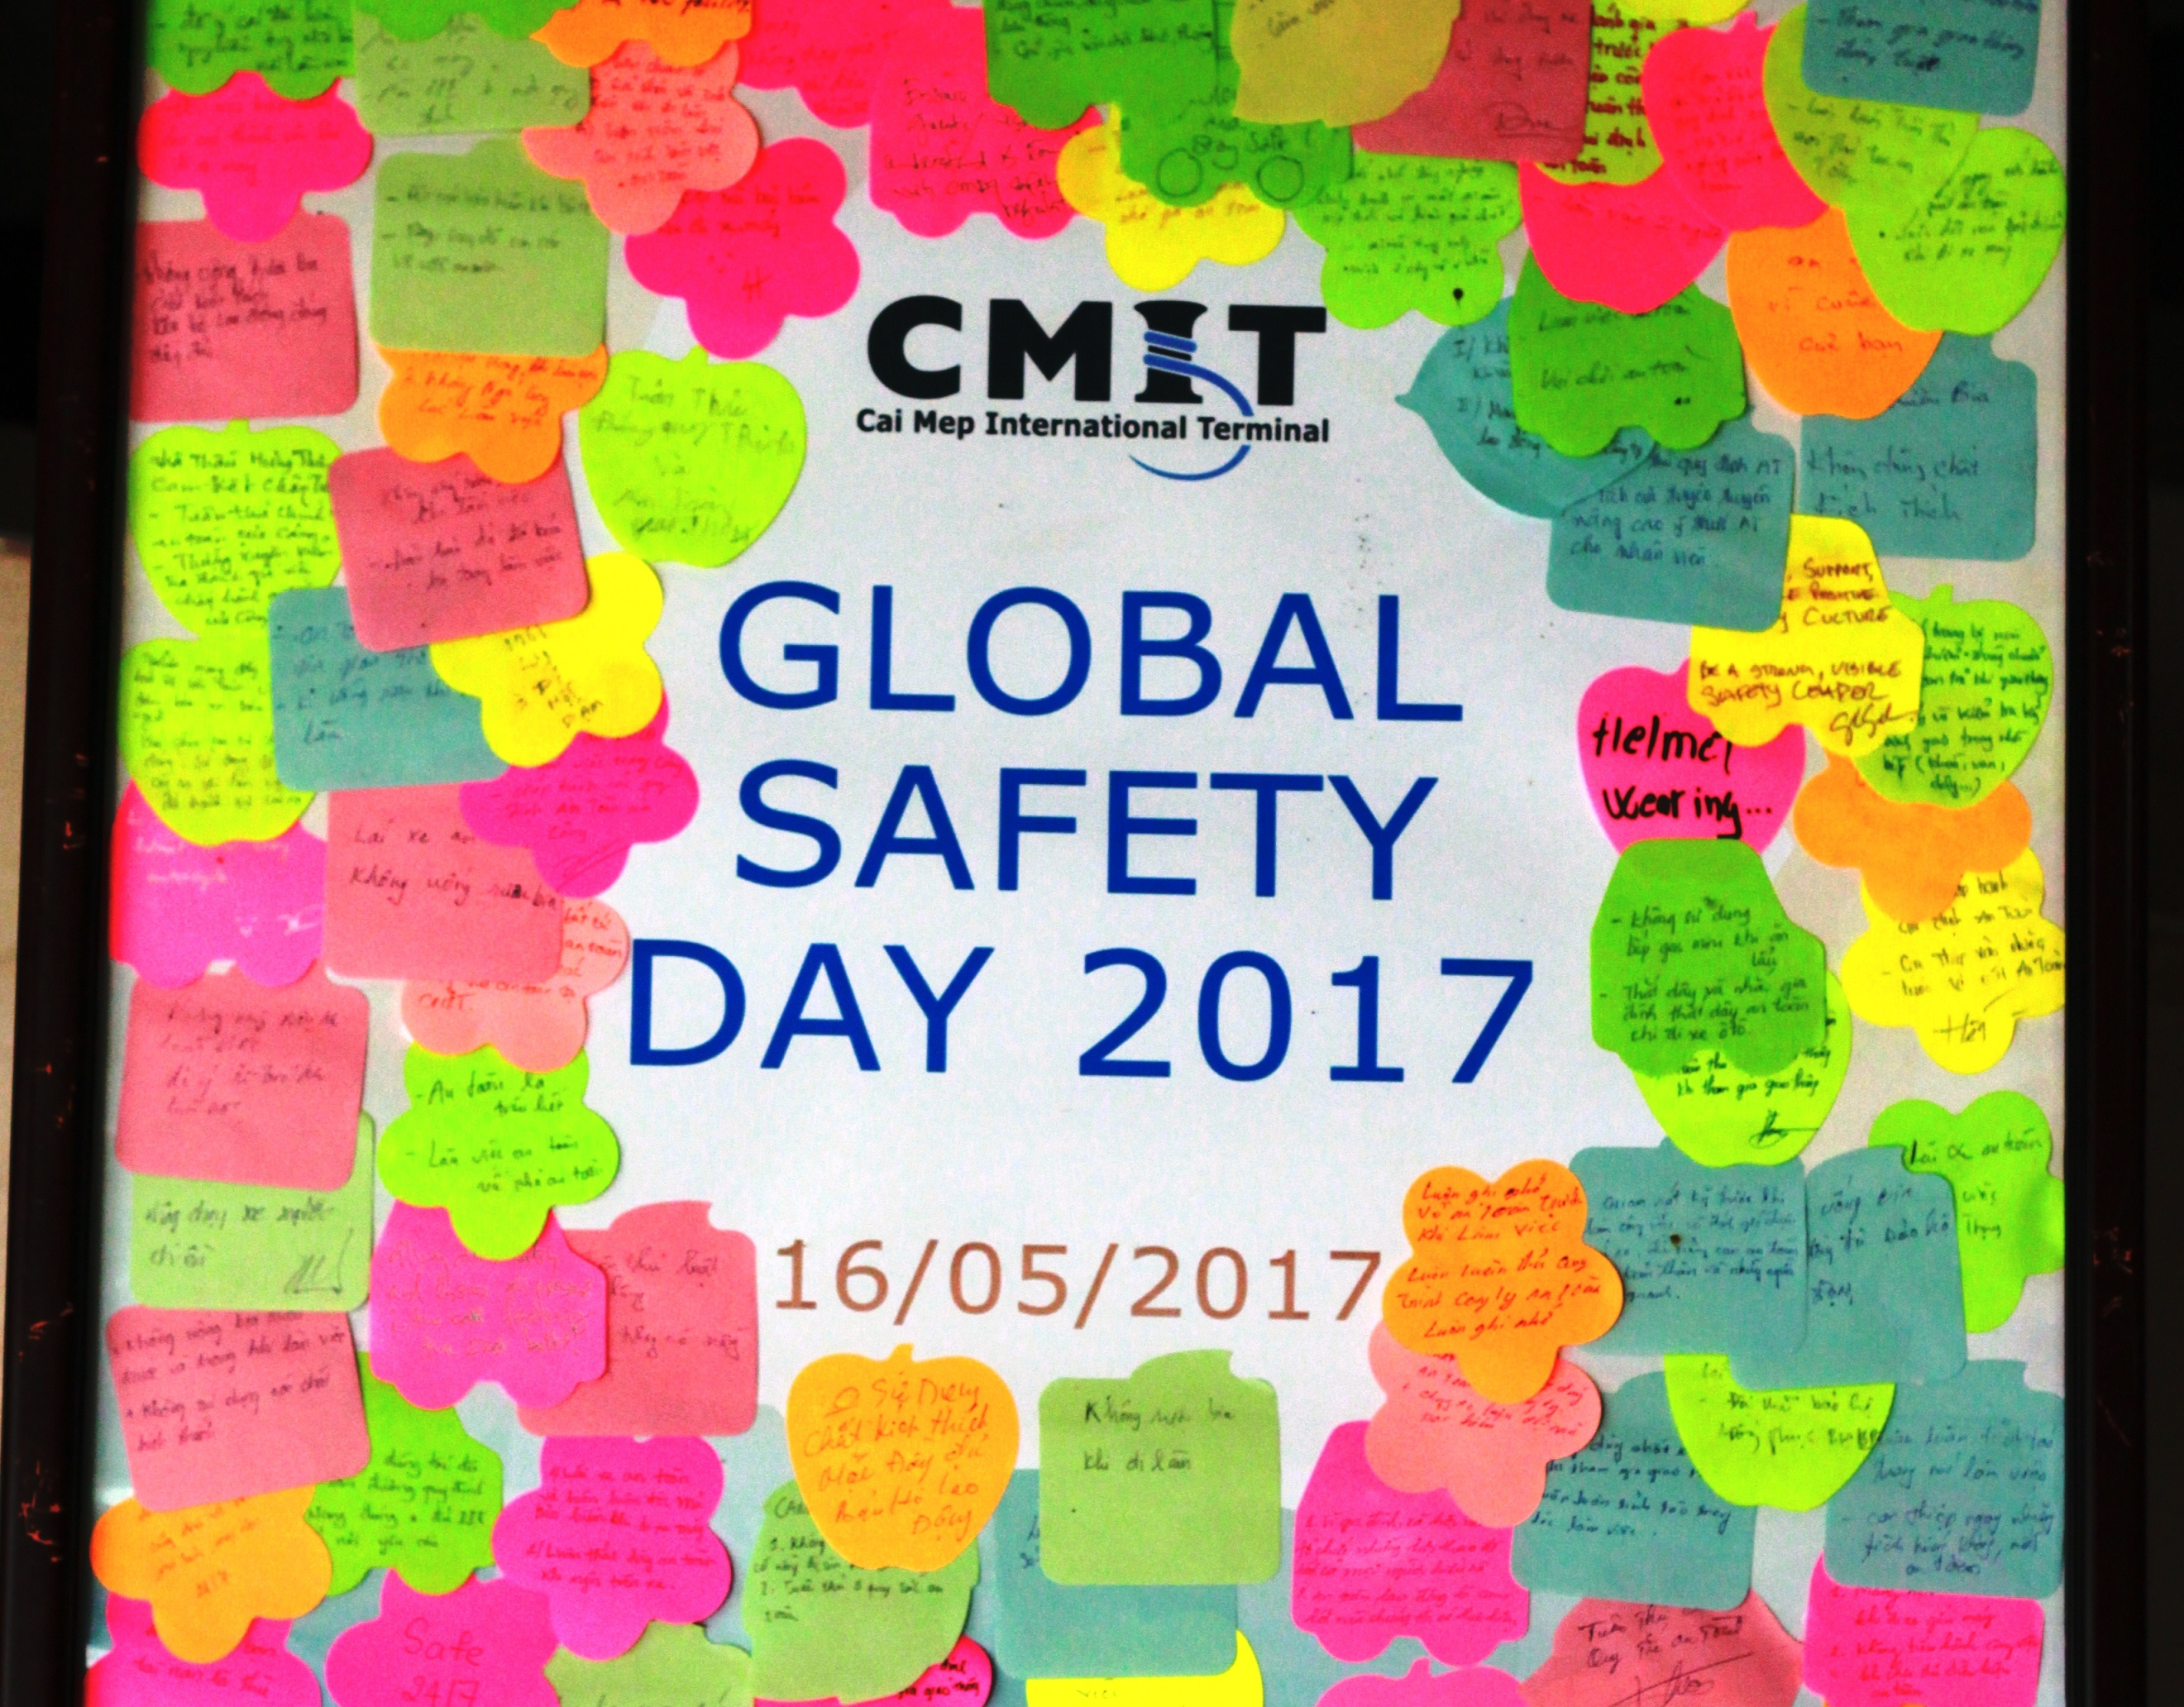 CMIT Global Safety Day - 16th May 2017